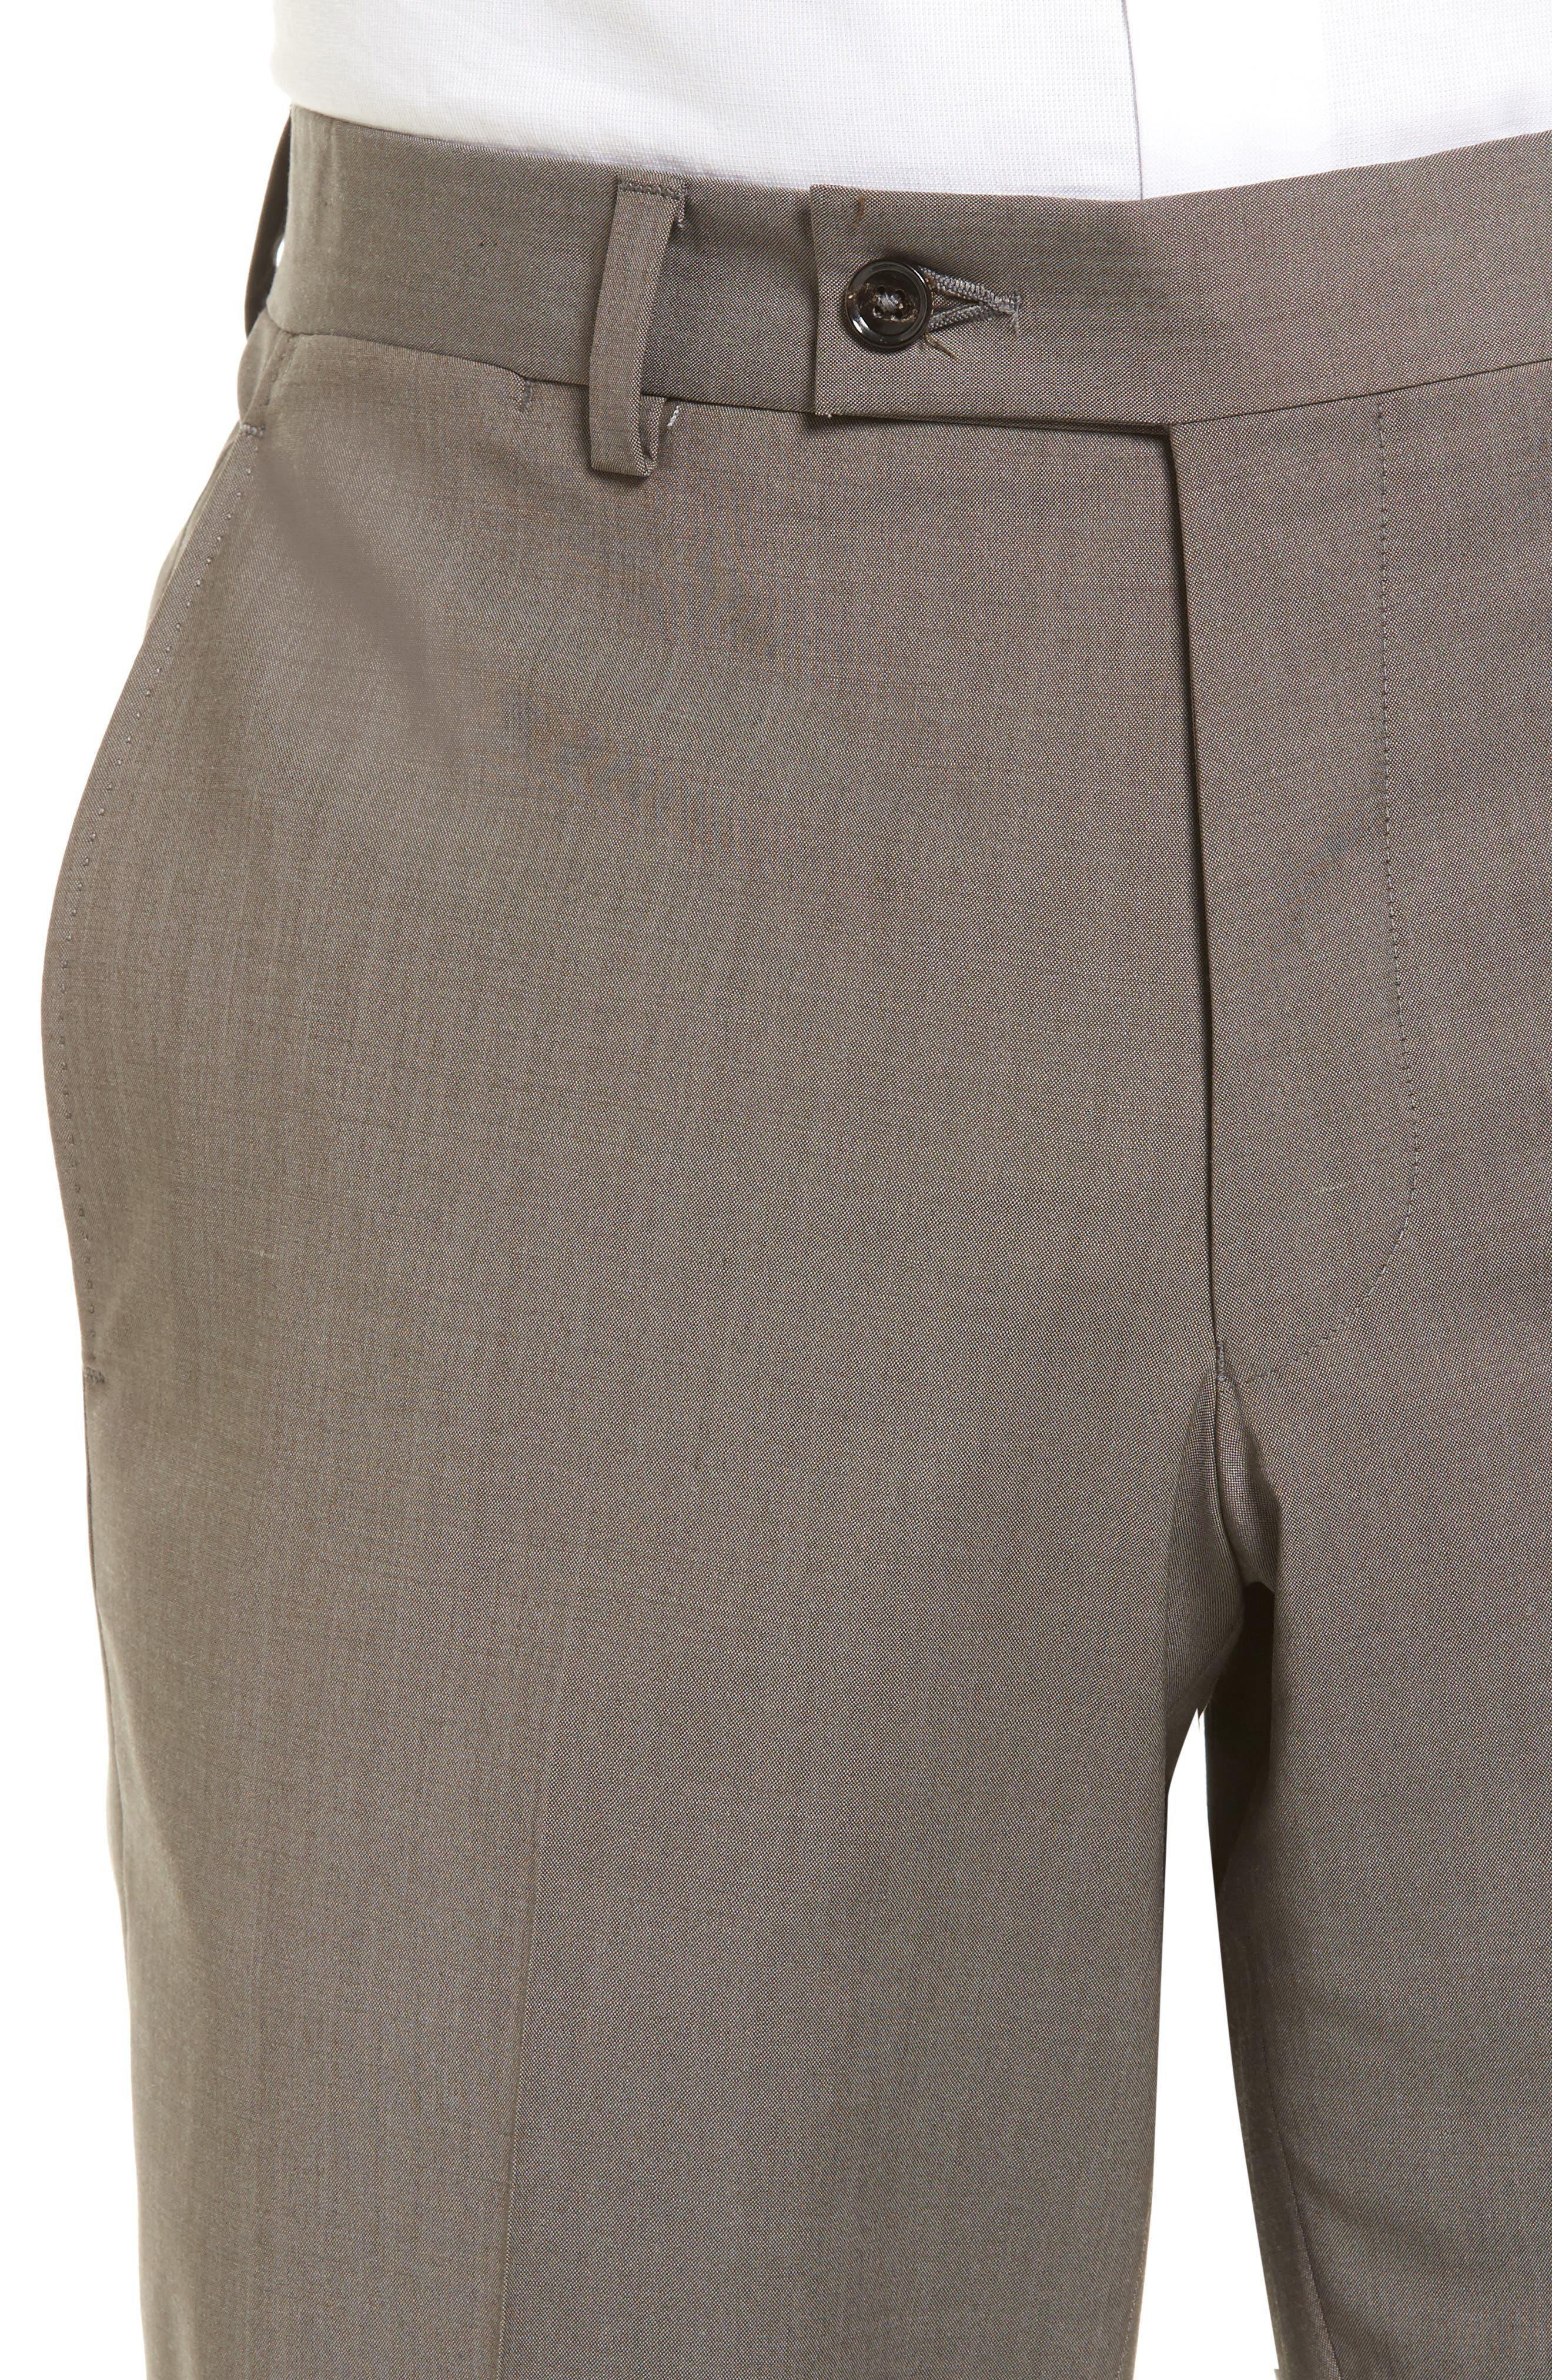 Jefferson Flat Front Stretch Wool Trousers,                             Alternate thumbnail 4, color,                             Grey